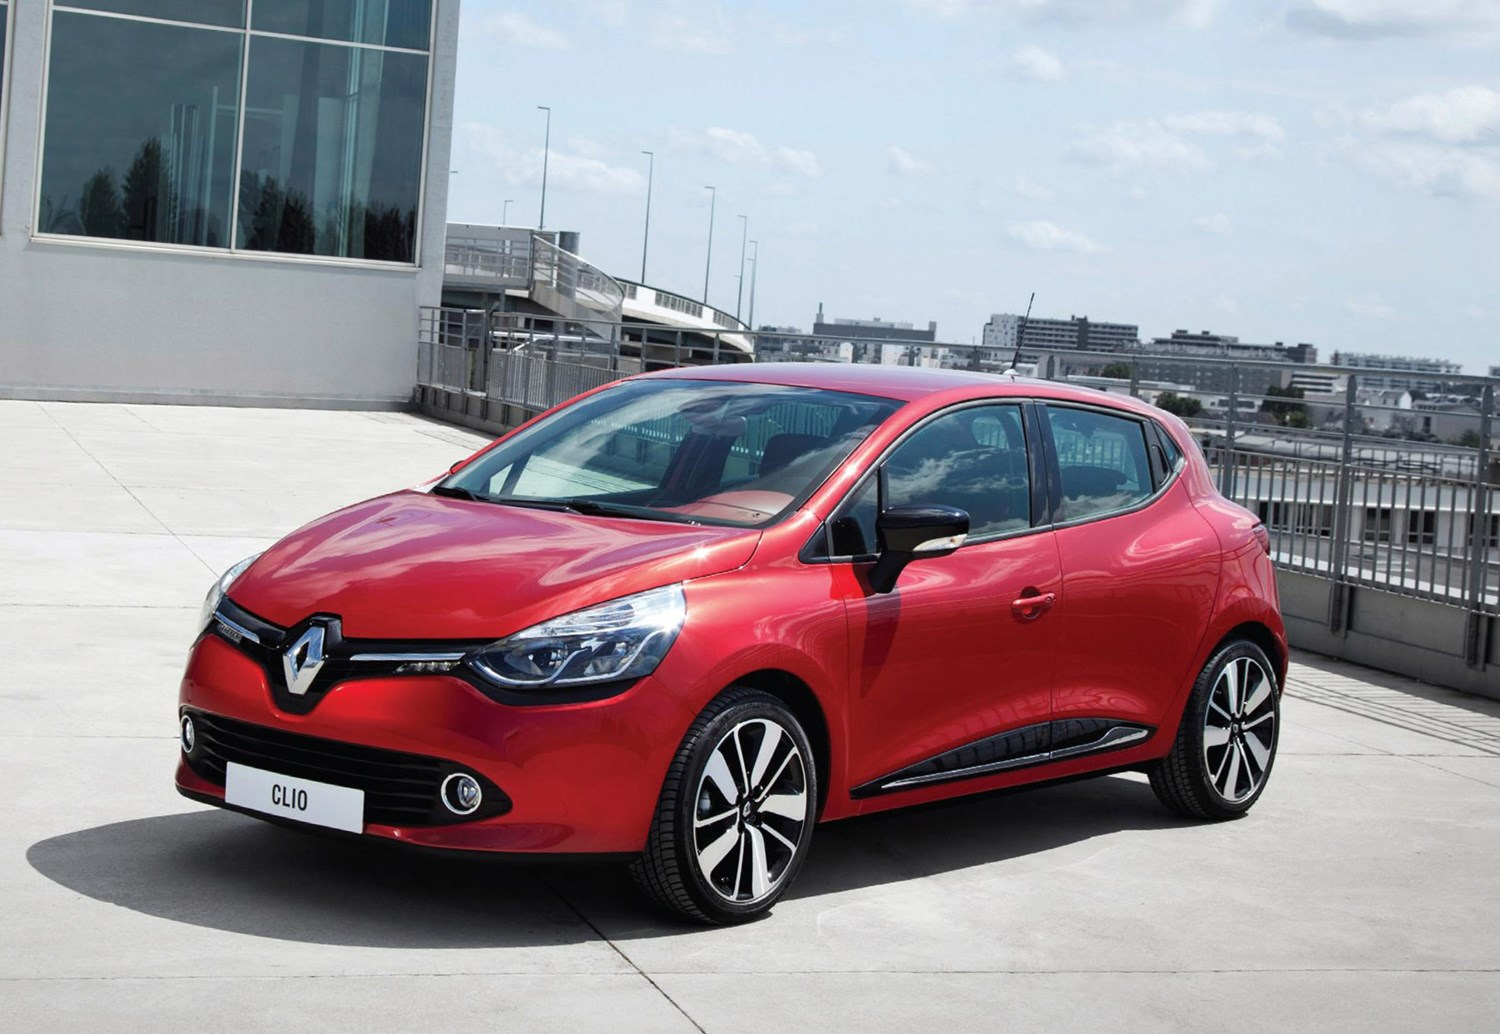 renault clio hatchback 2012 features equipment and accessories parkers. Black Bedroom Furniture Sets. Home Design Ideas